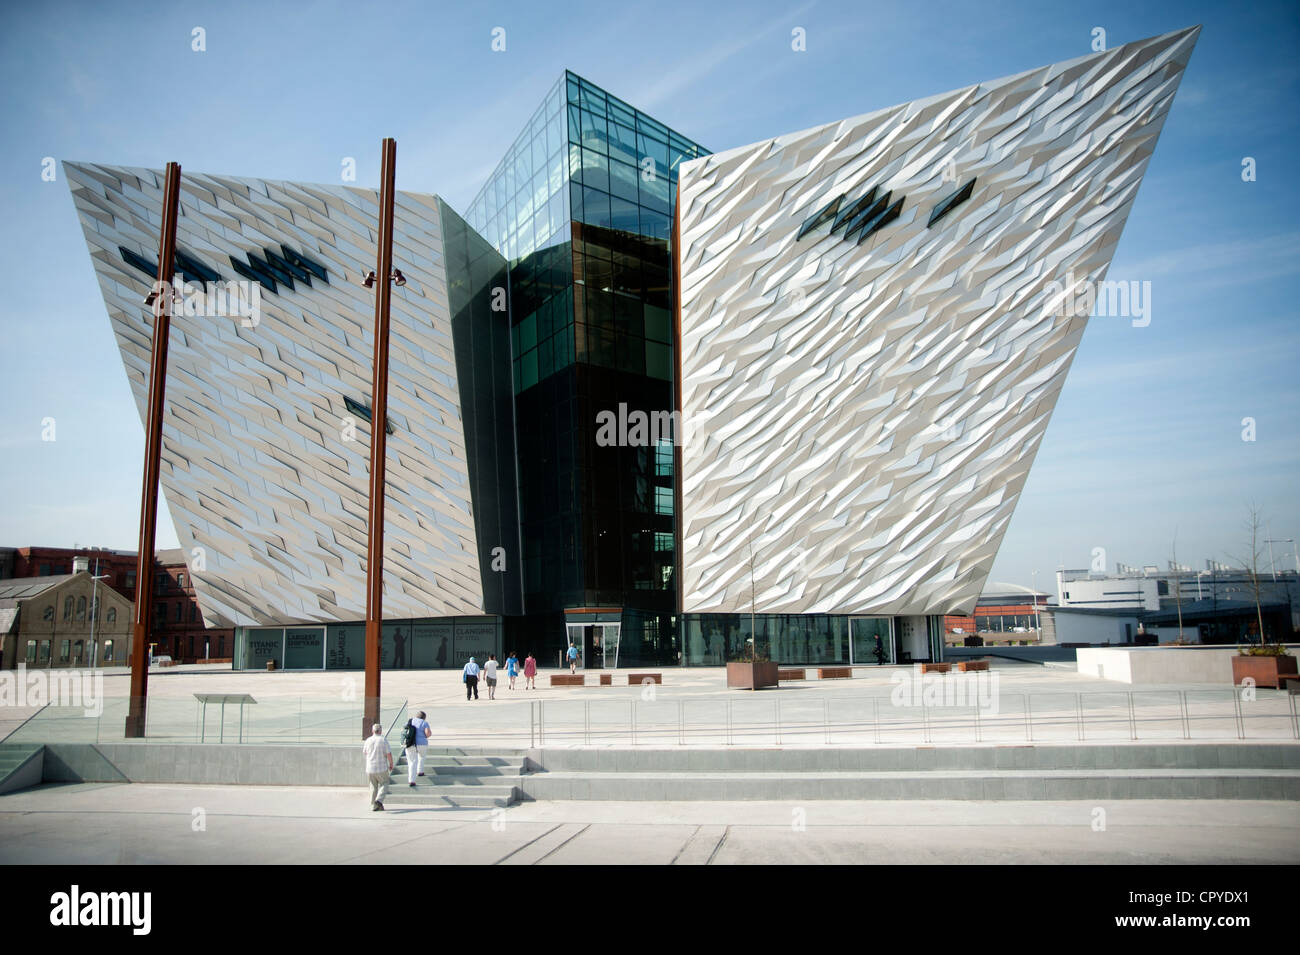 Belfast Titanic Museum and Visitor Centre, Belfast City, County Antrim, Northern Ireland - Stock Image